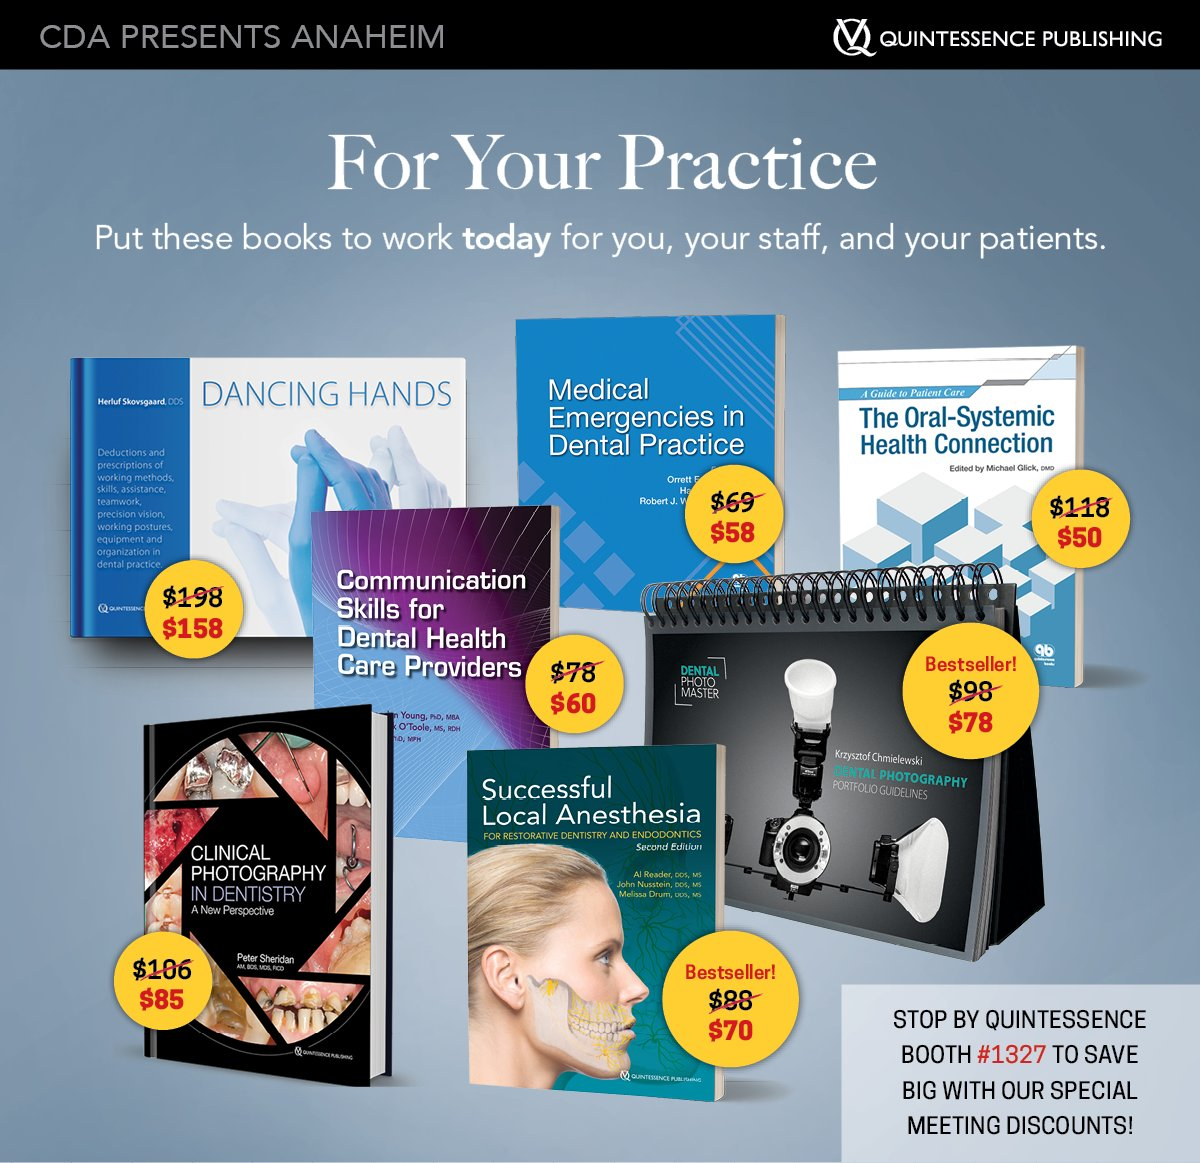 Stop by Quintessence booth 1327 while you re here to take advantage of our  special meeting discounts on great titles for you and your practice! 127a0af31